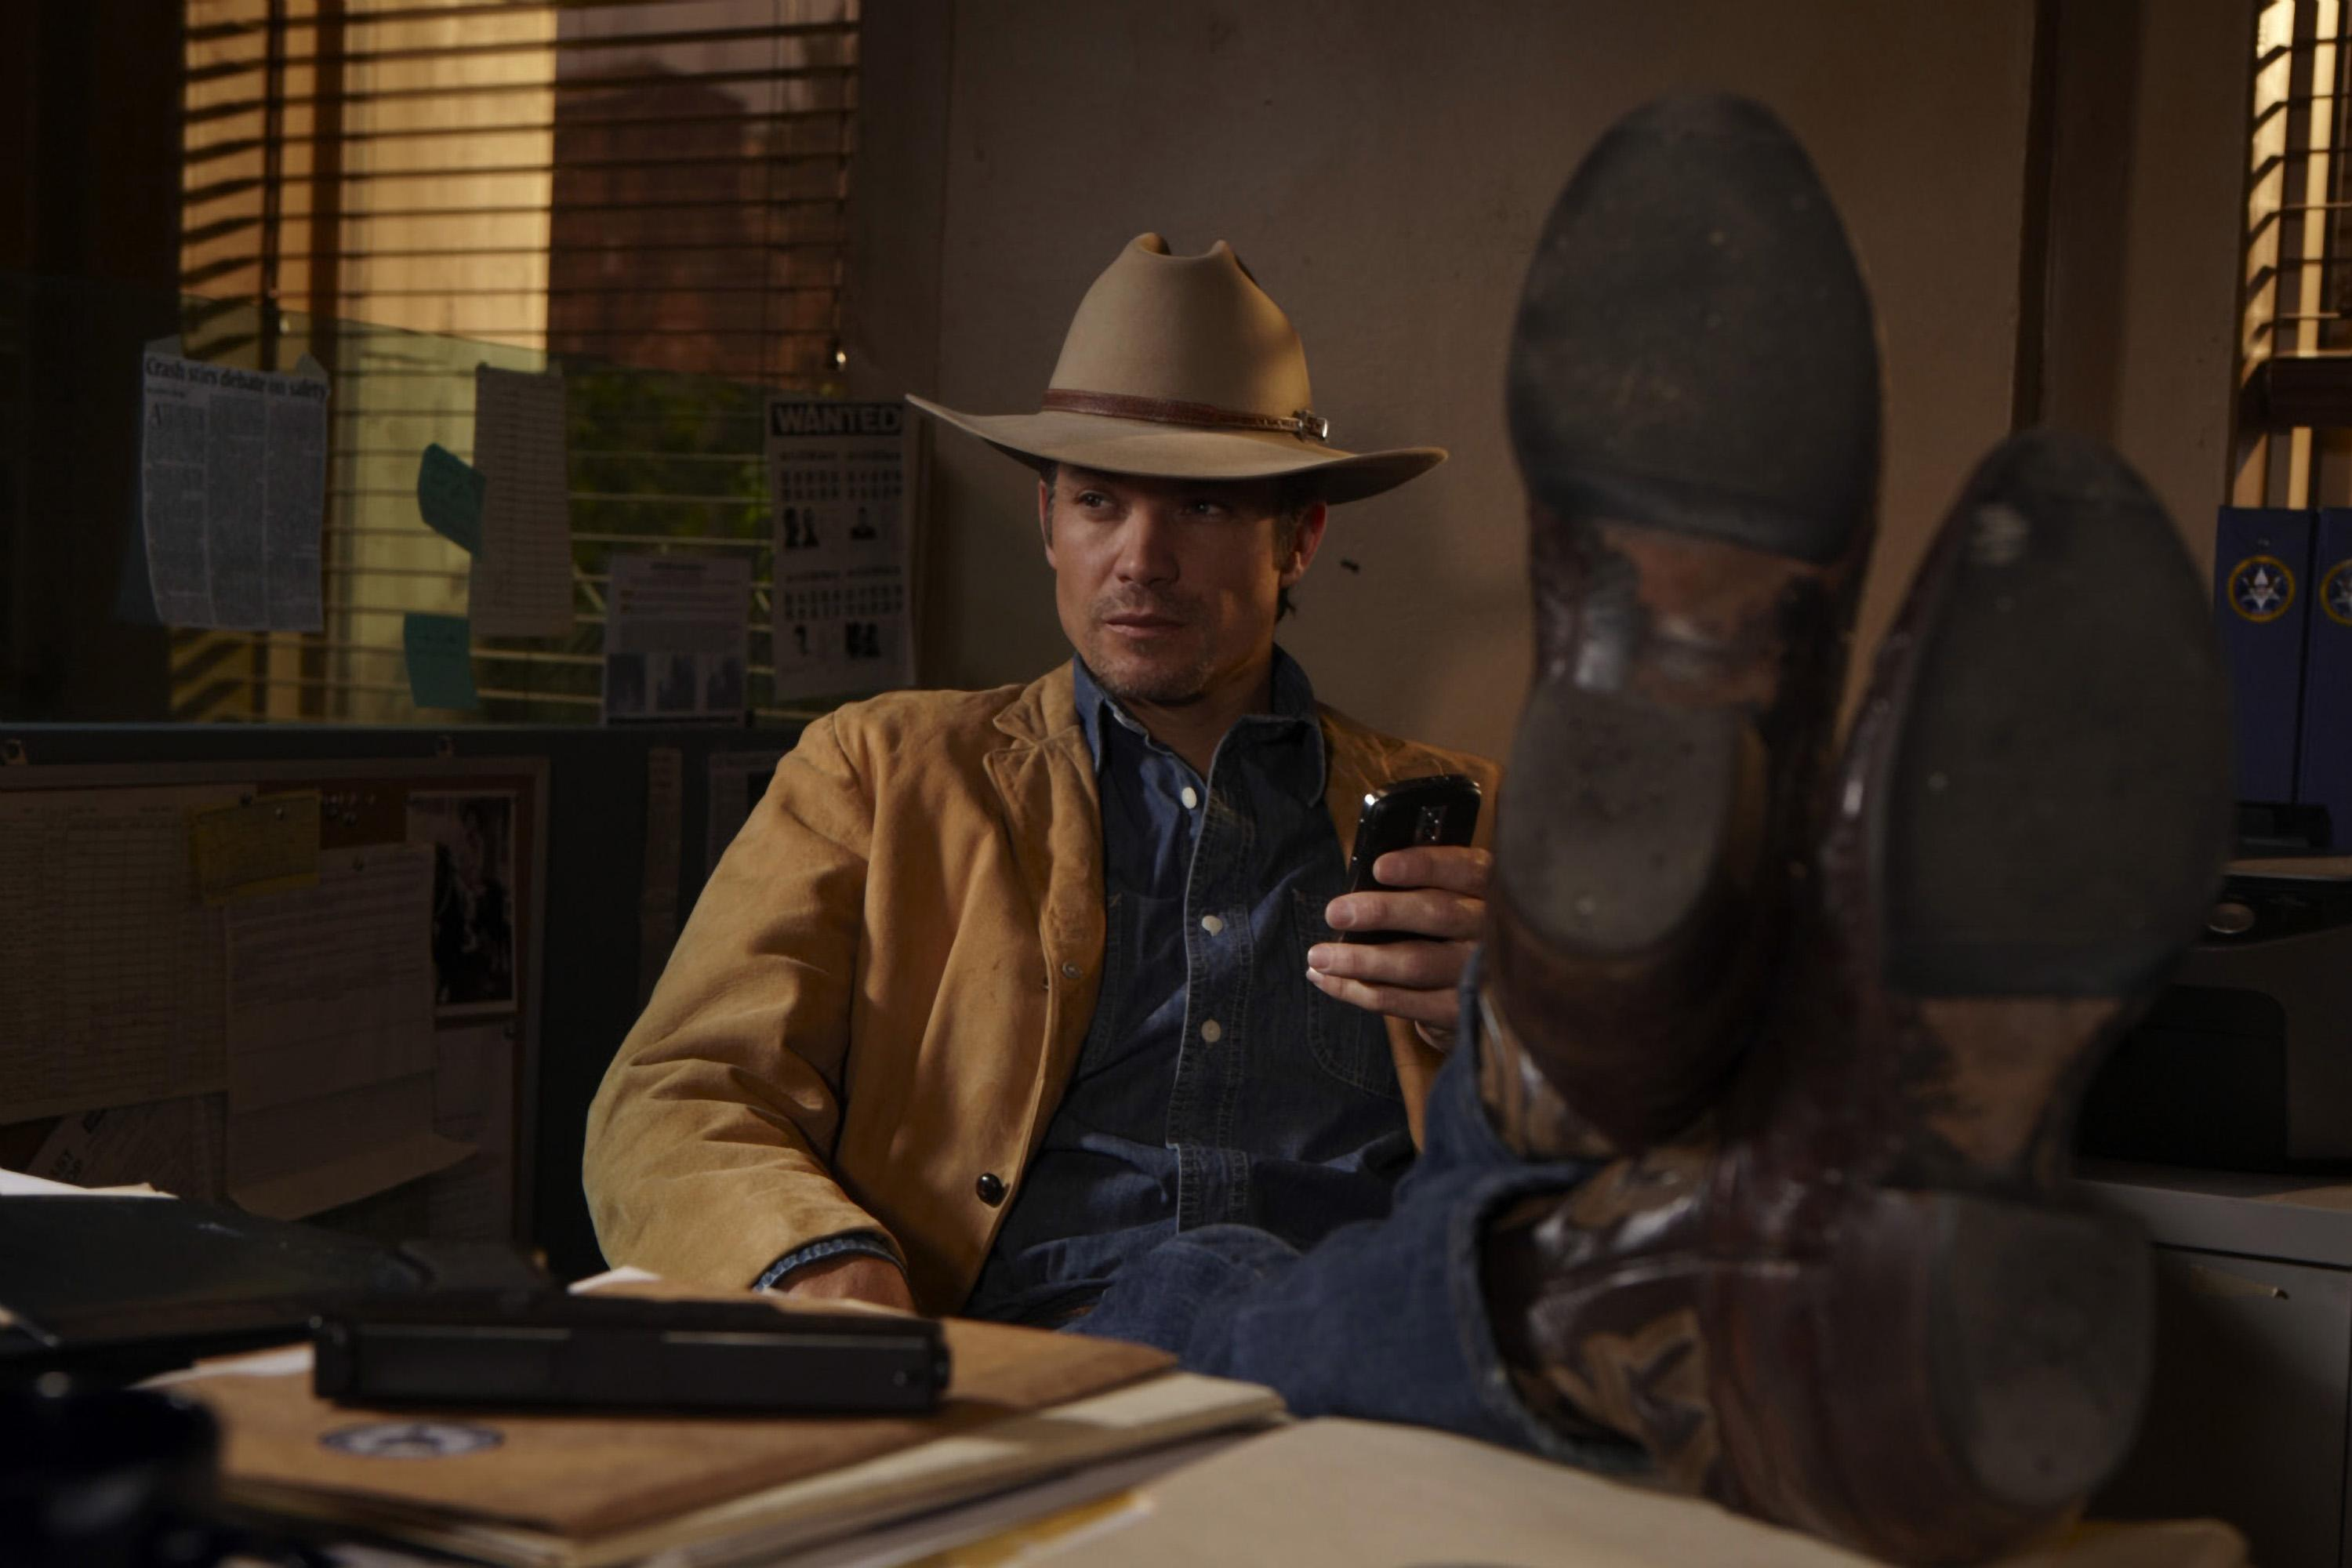 justified star timothy olyphant cast for oliver stone�s